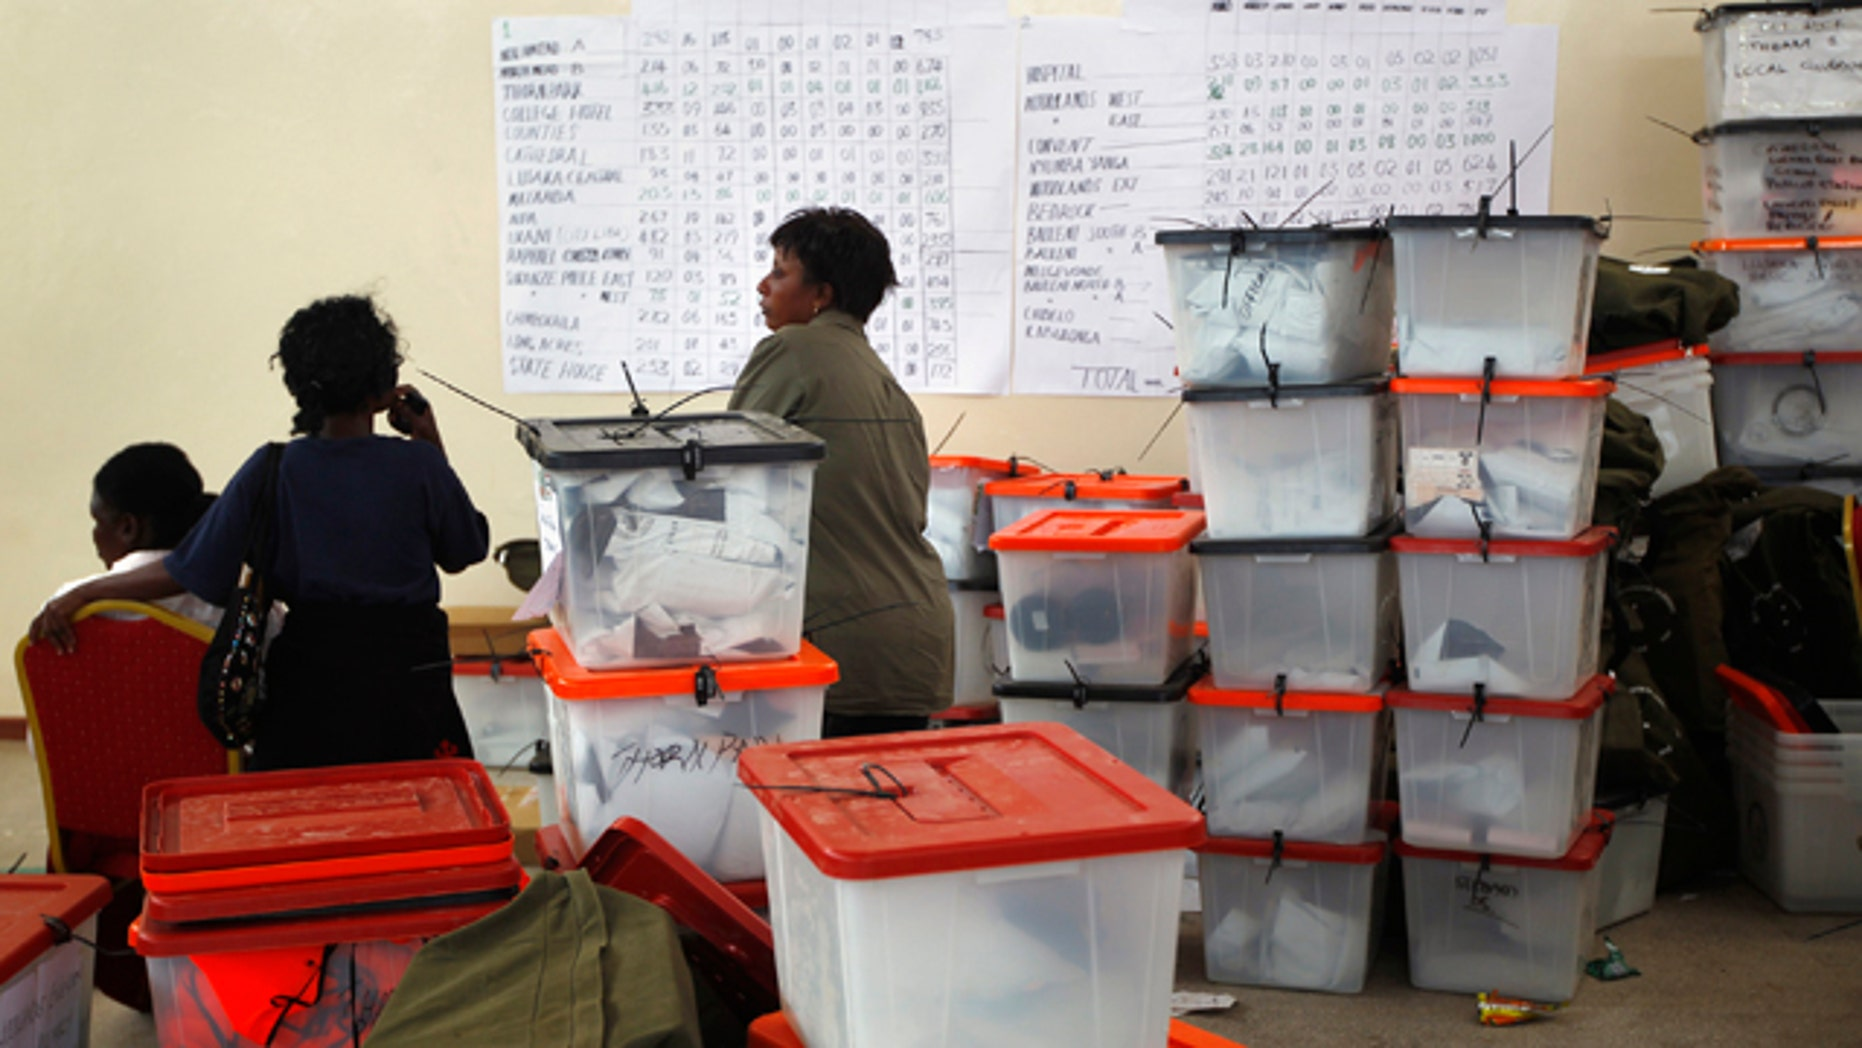 Sept. 22: Election volunteers stand by ballot boxes stored at the Civic Center in Lusaka, Zambia.